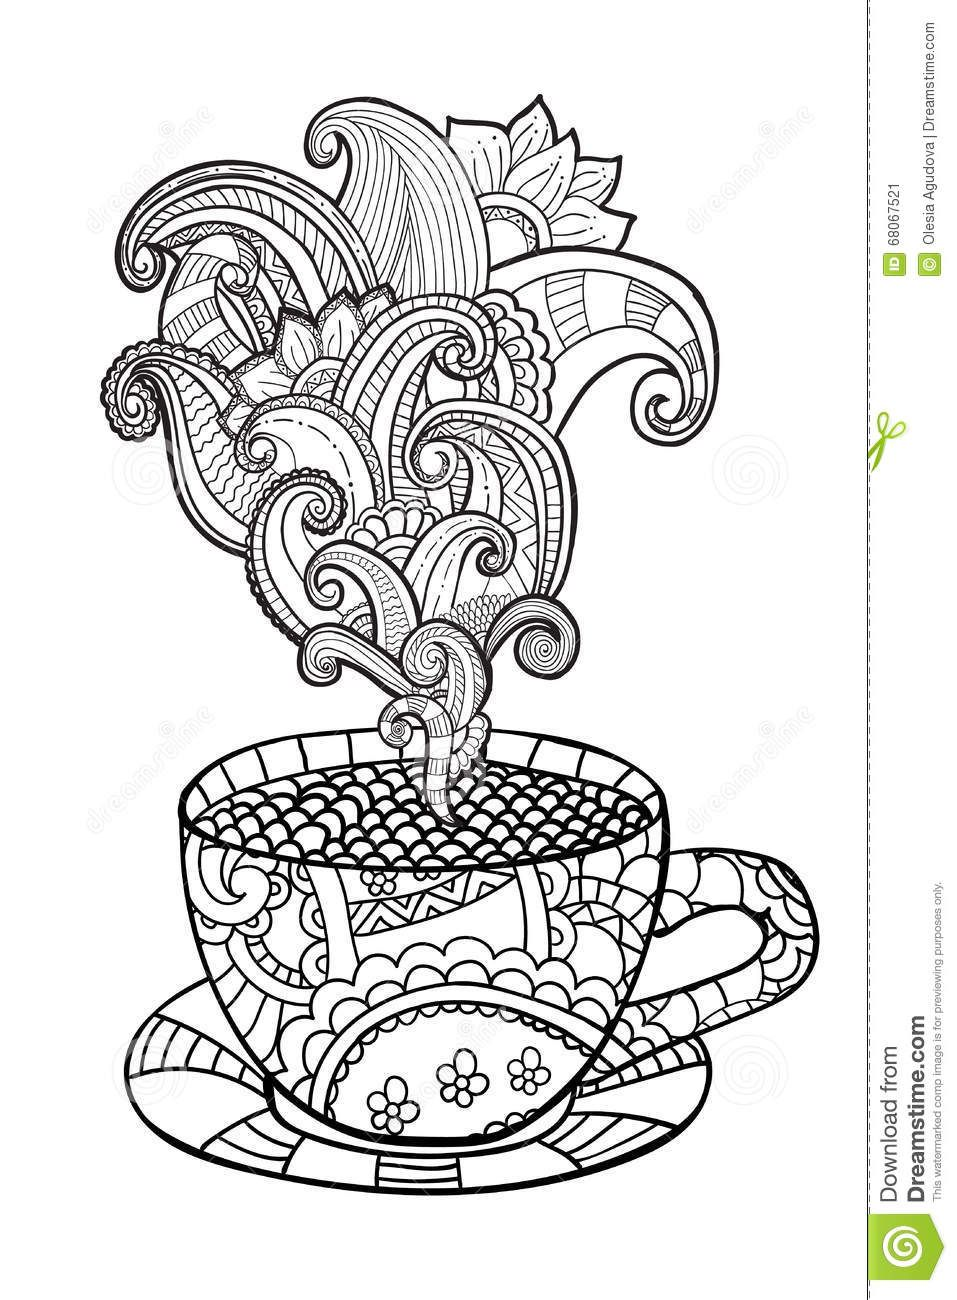 colouring book page for adults